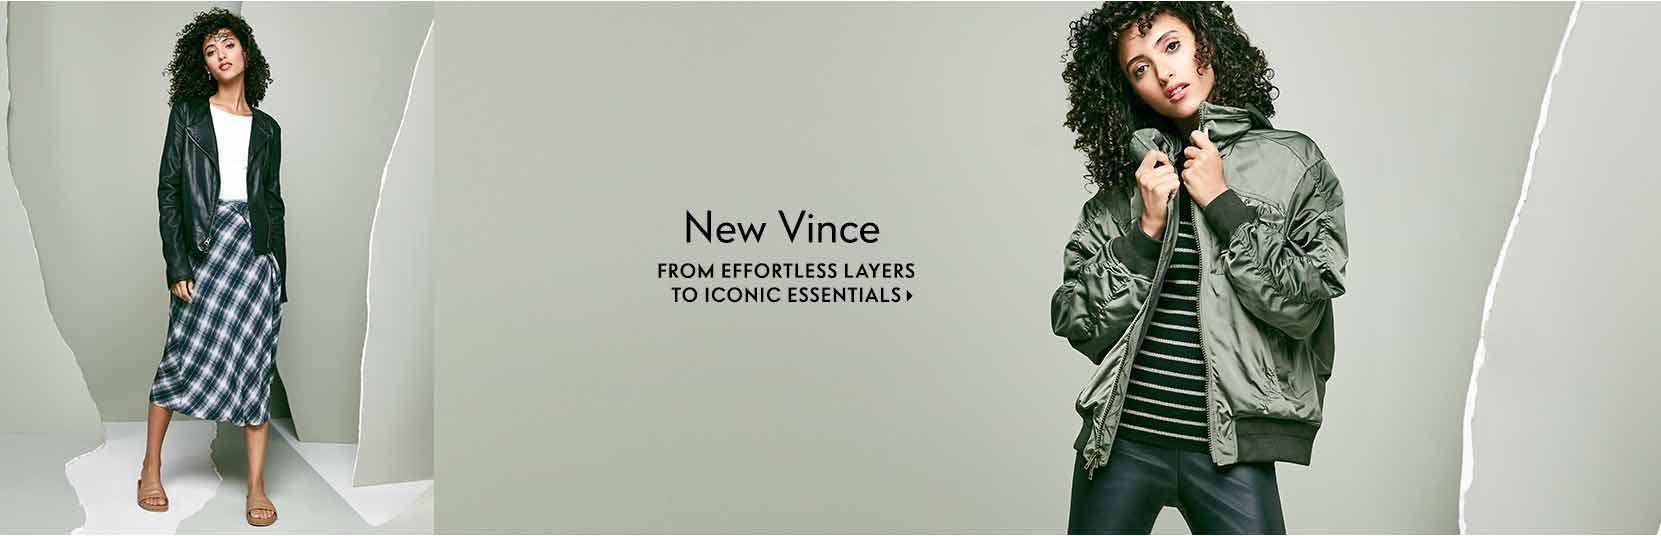 New Vince From effortless layers to iconic essentials